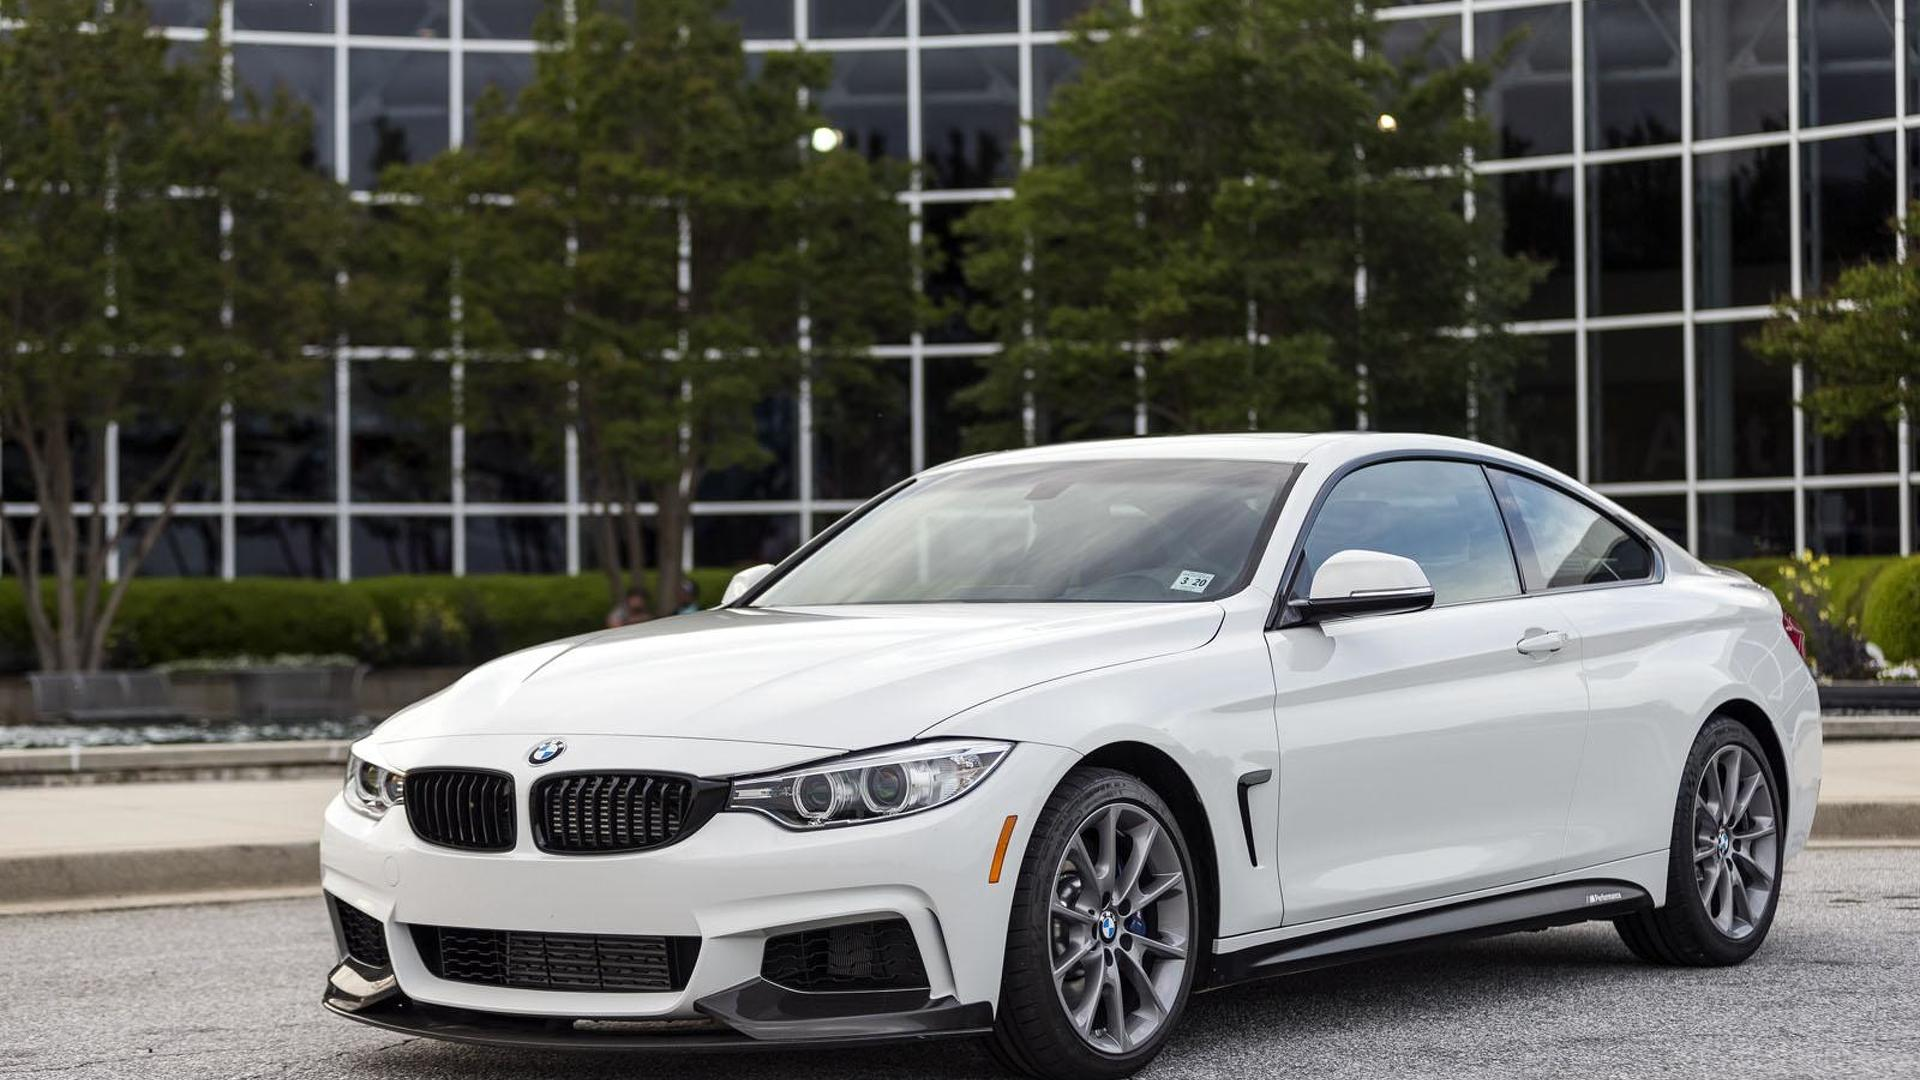 2016 BMW 435i ZHP Coupe unveiled with 335 bhp